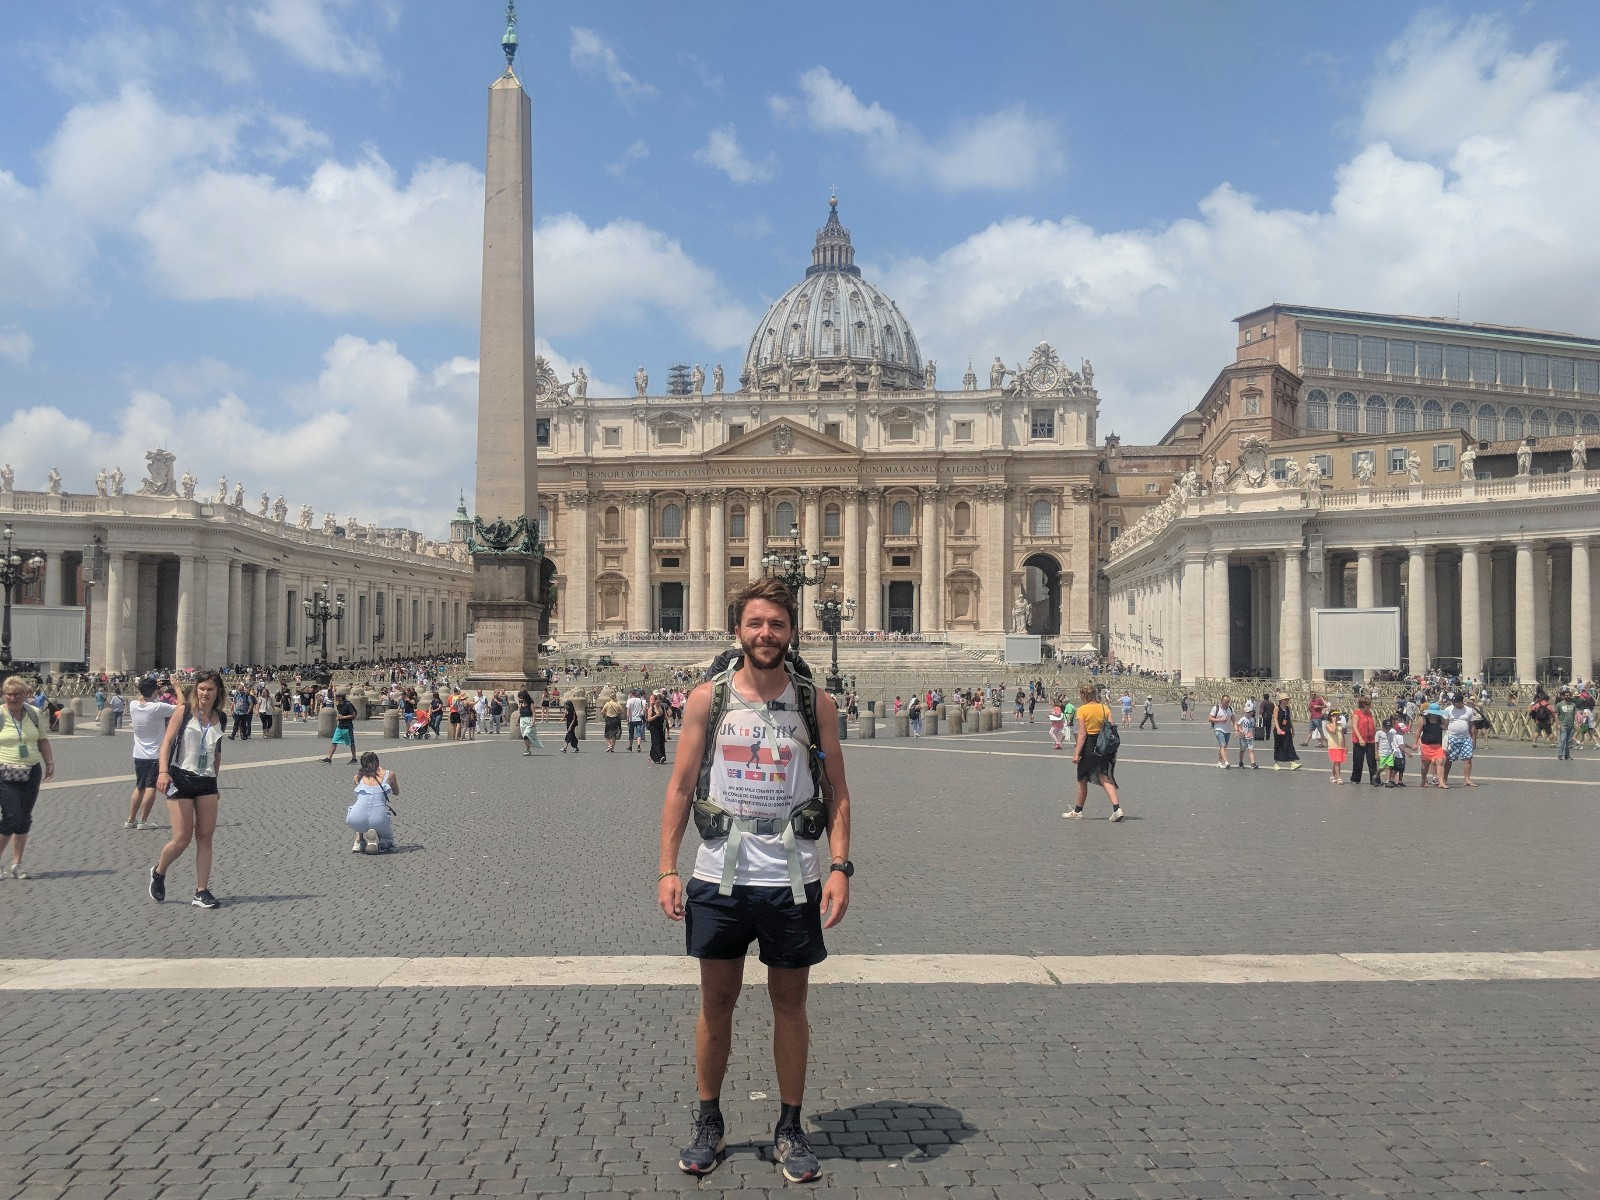 Ross reaches the end of the pilgrim's route in Rome, but still has a long way to go to Sicily